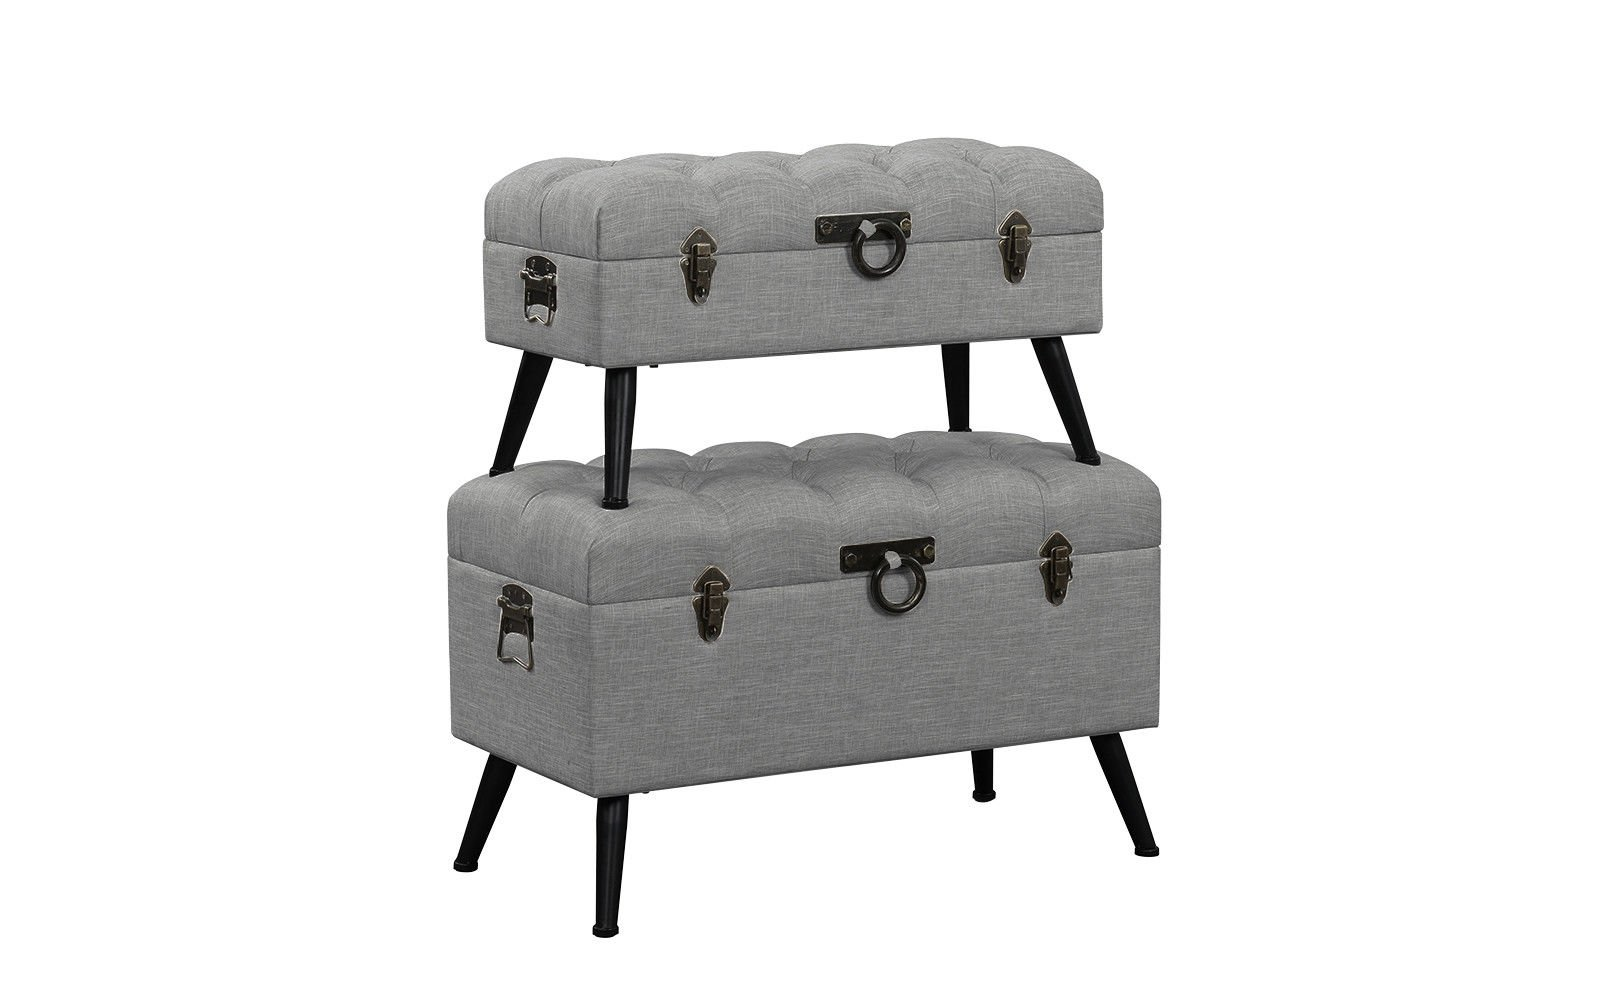 accent table chests argos tall ott target black convenience var round sims cabinet tel wicker met eso thresholdtm storage difference bench concepts factorio oma threshold between